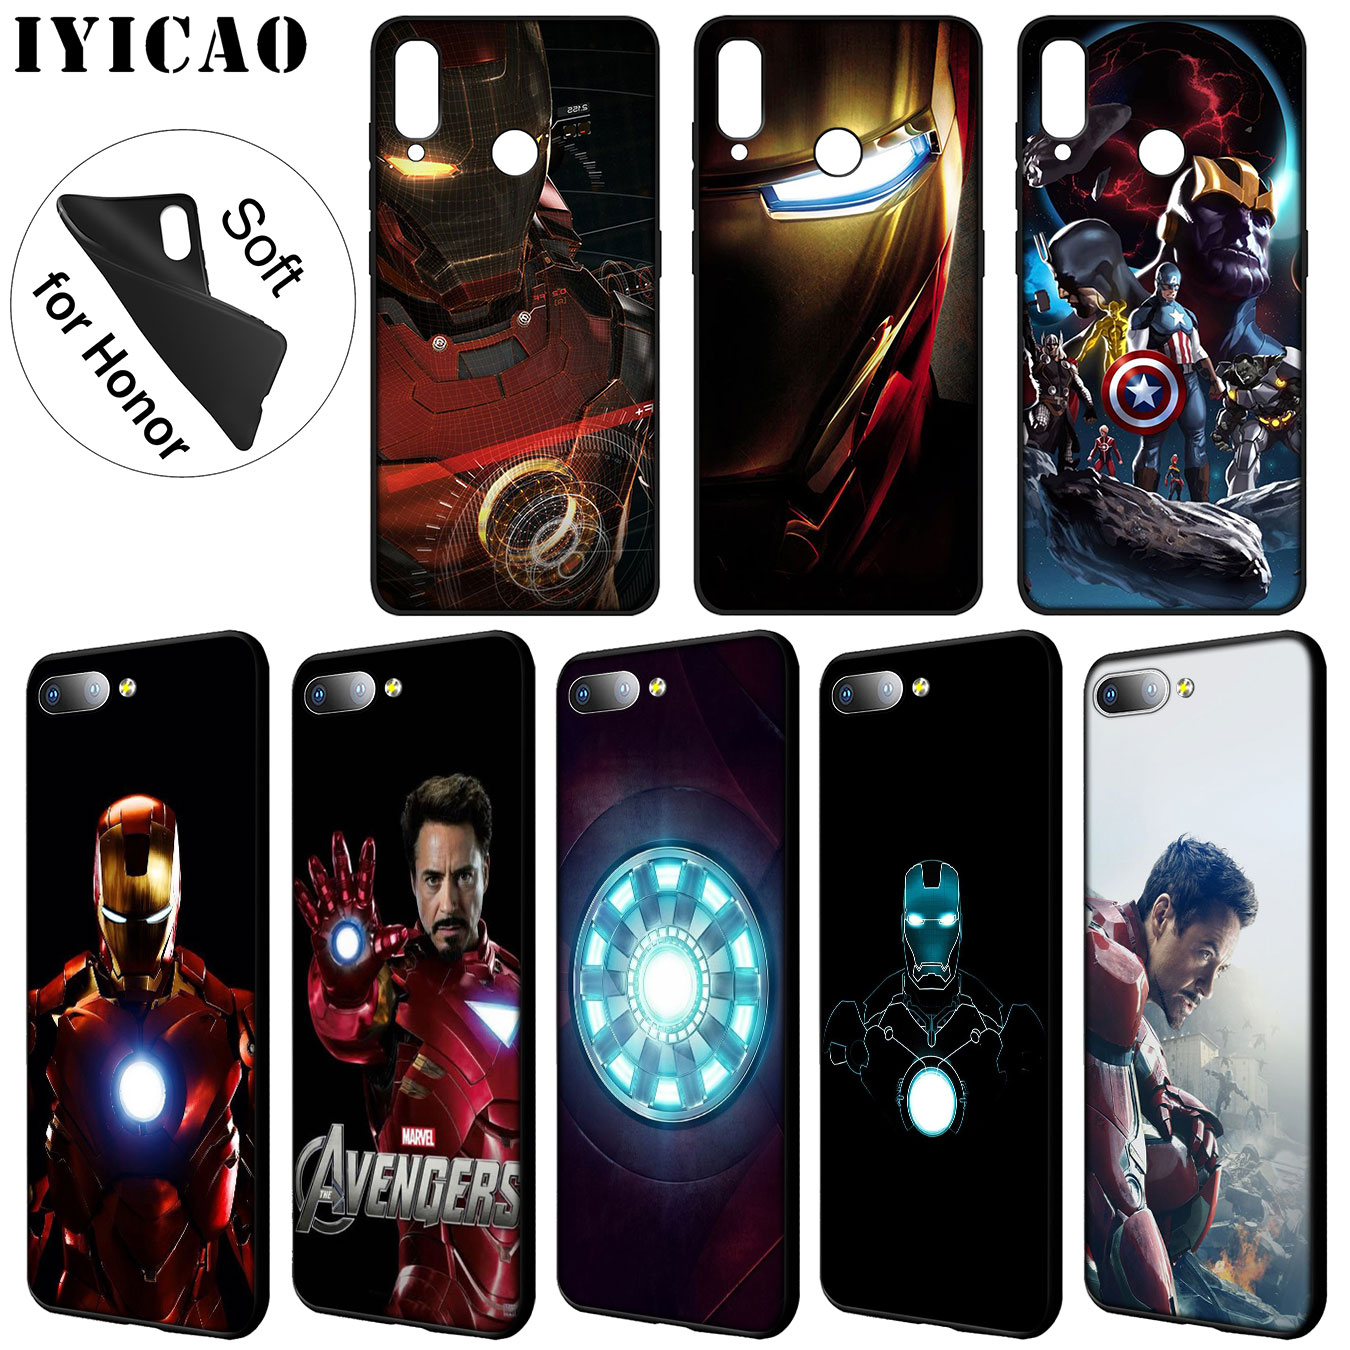 IYICAO <font><b>Marvel</b></font> Iron man Soft Silicone Phone <font><b>Case</b></font> for <font><b>Huawei</b></font> Y9 <font><b>Y7</b></font> Y6 Prime <font><b>2019</b></font> Cover Honor 20 8C 8X 8 9 9X 10 Lite 7C 7X 7A Pro image